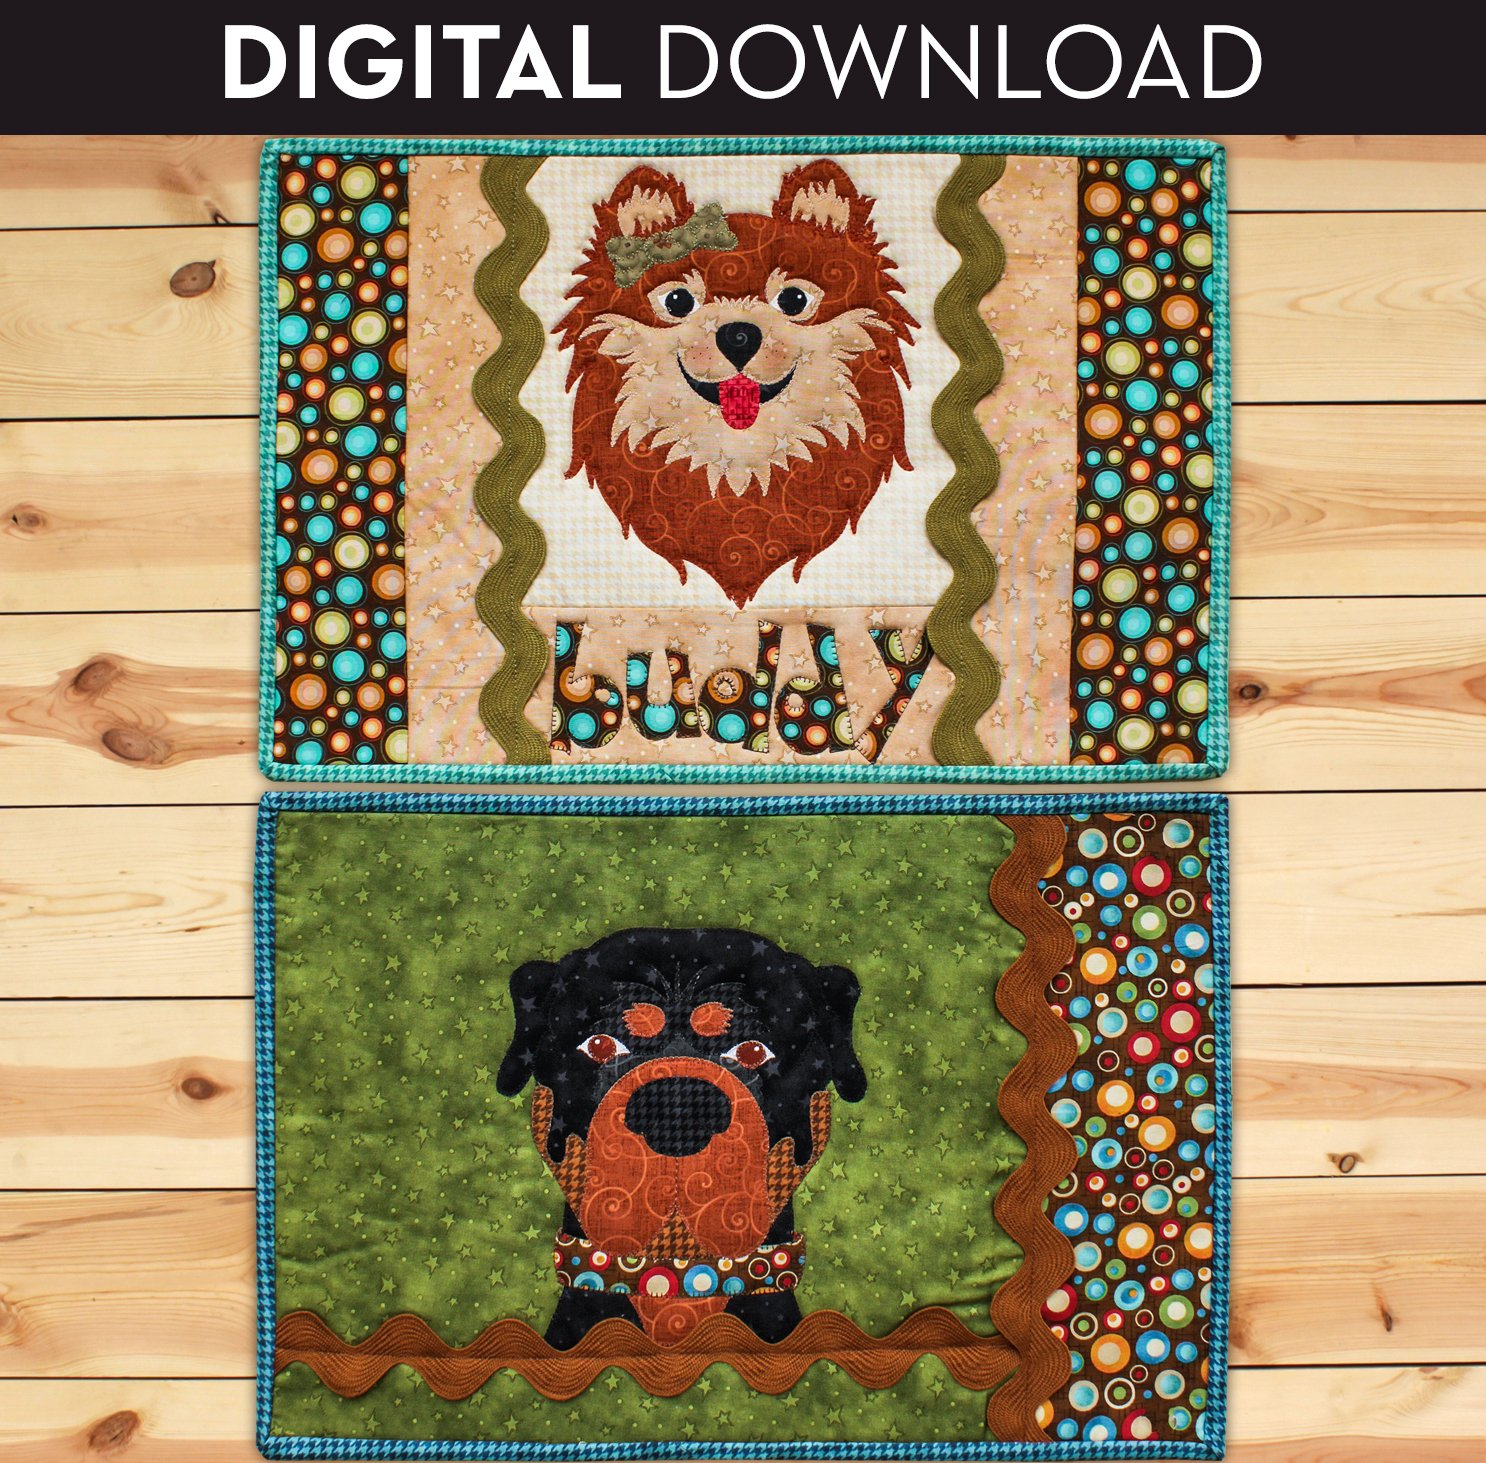 Puppy Placemats - Download (Appliques not included)